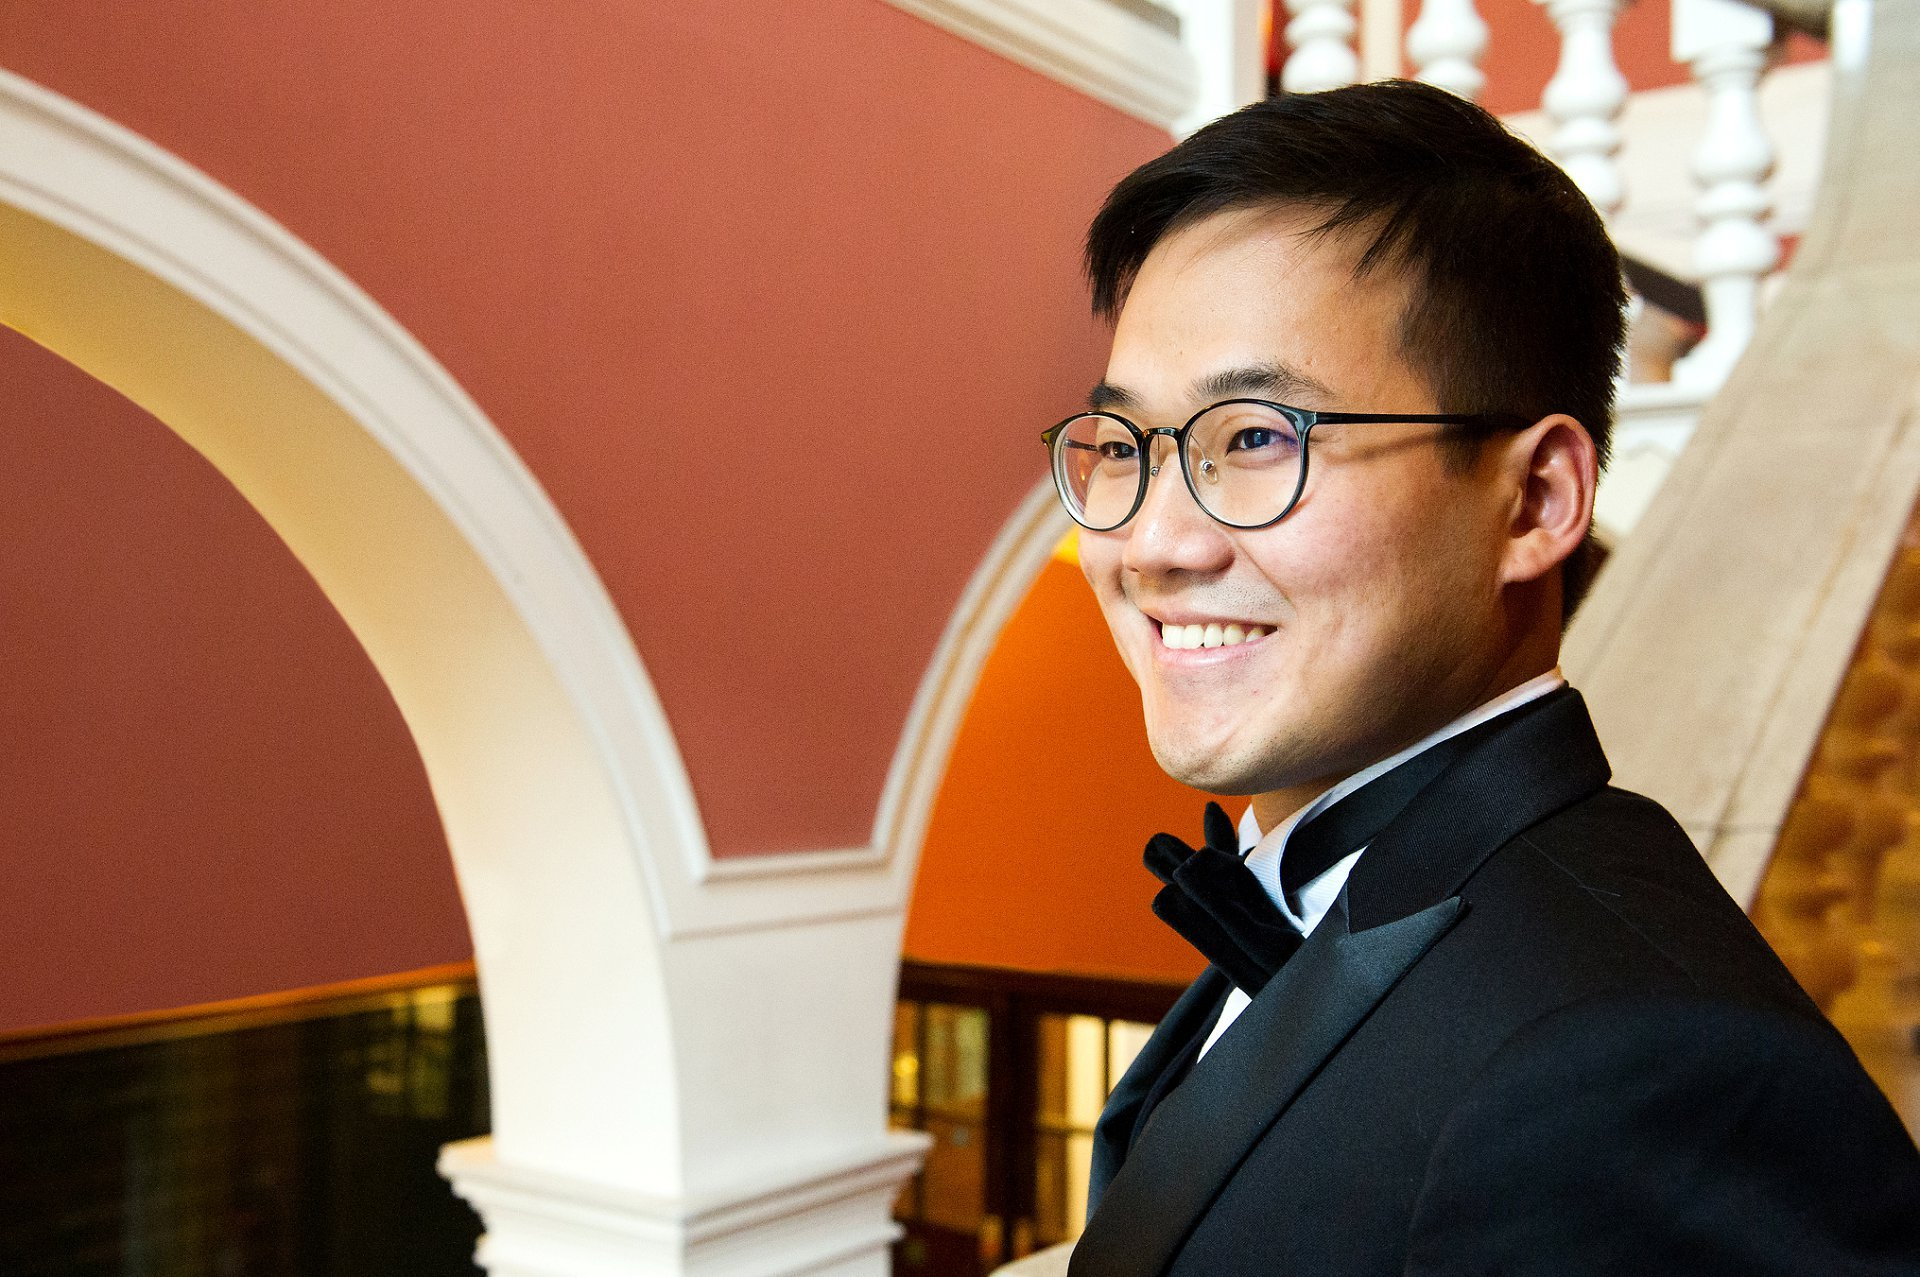 Malaysian wedding Chelsea Old Town Hall groom on staircase before ceremony in the Rossetti Room